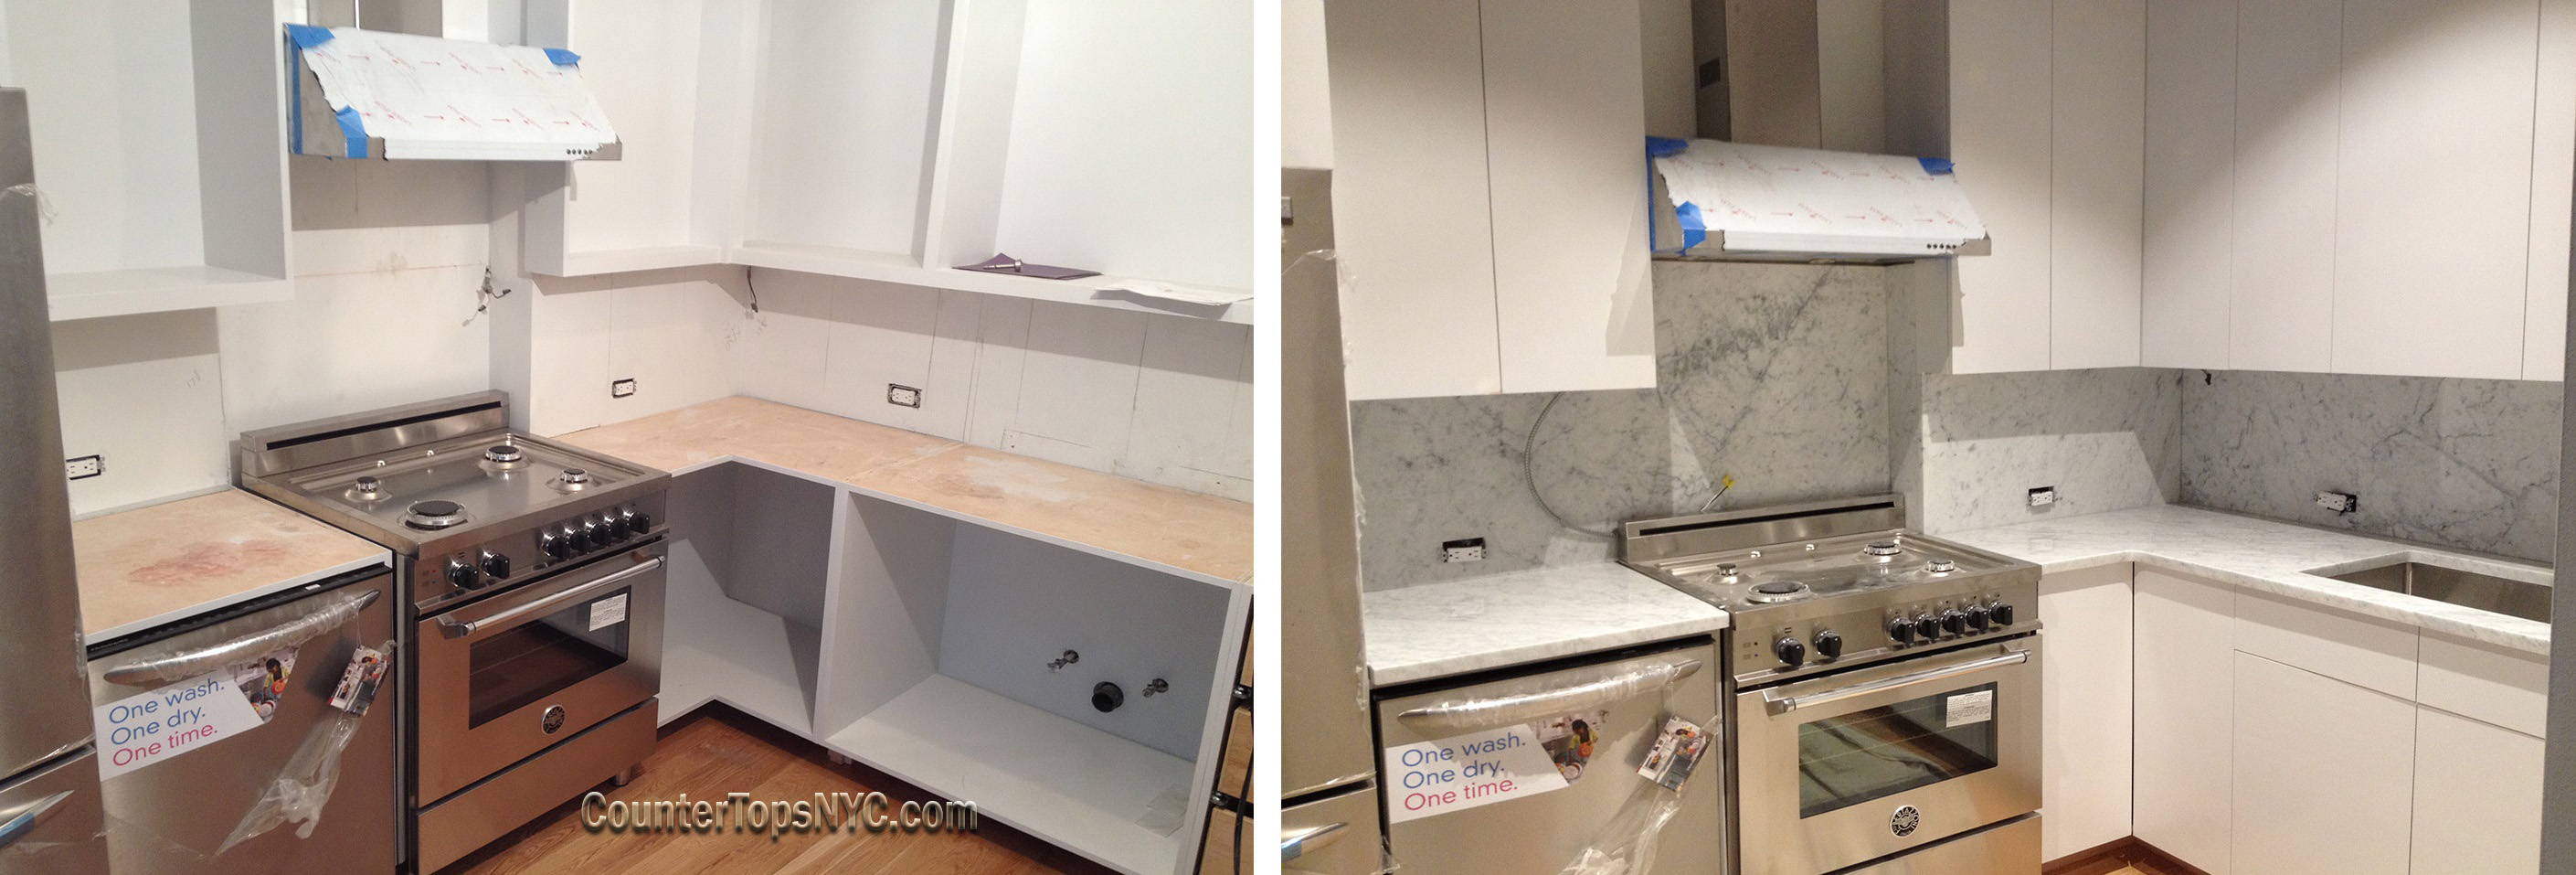 kitchen Renovation in NYC